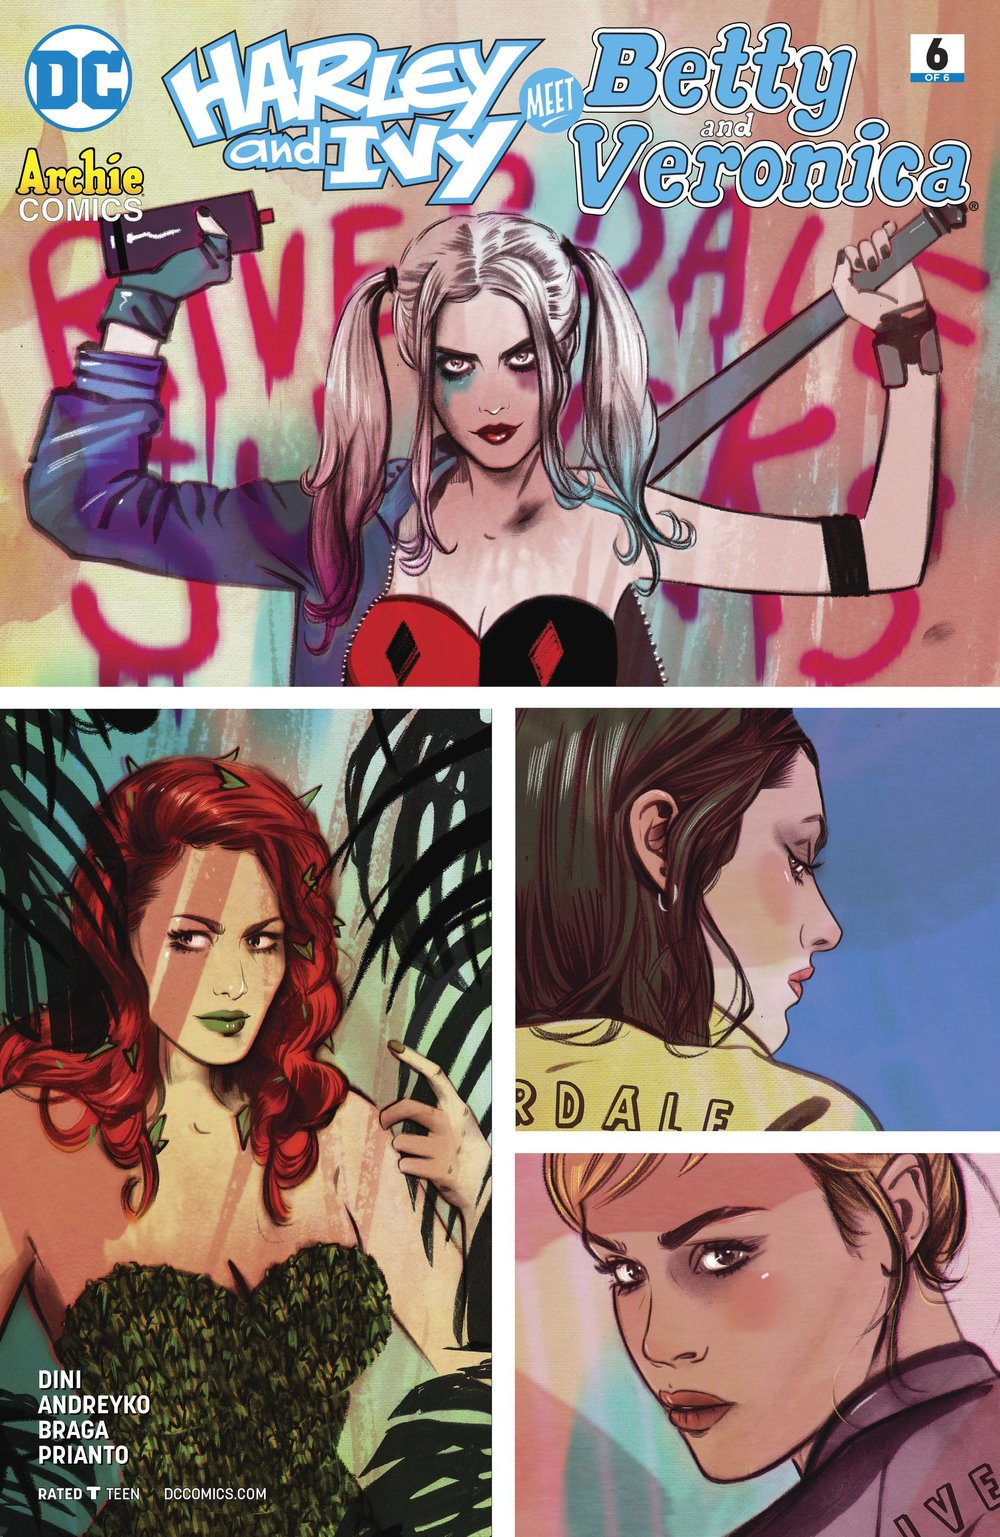 HARLEY _ IVY MEET BETTY _ VERONICA 6 of 6.jpg